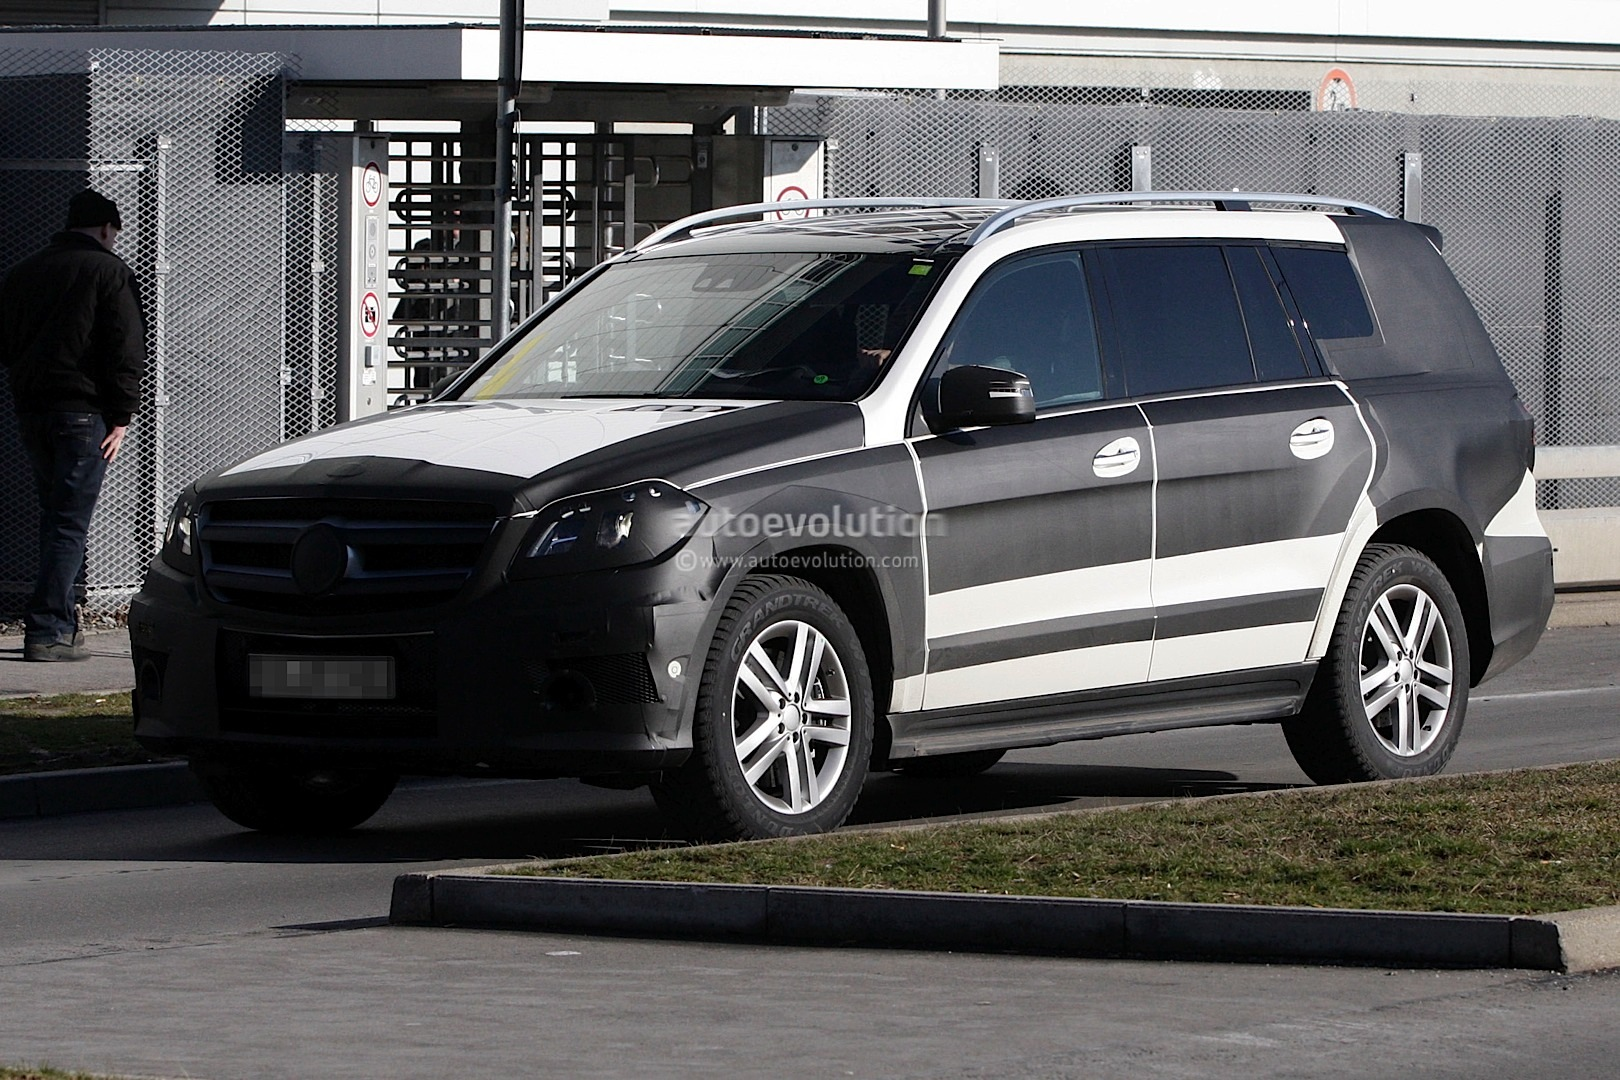 2013 mercedes benz gl class will debut in new york for 2013 mercedes benz gl class